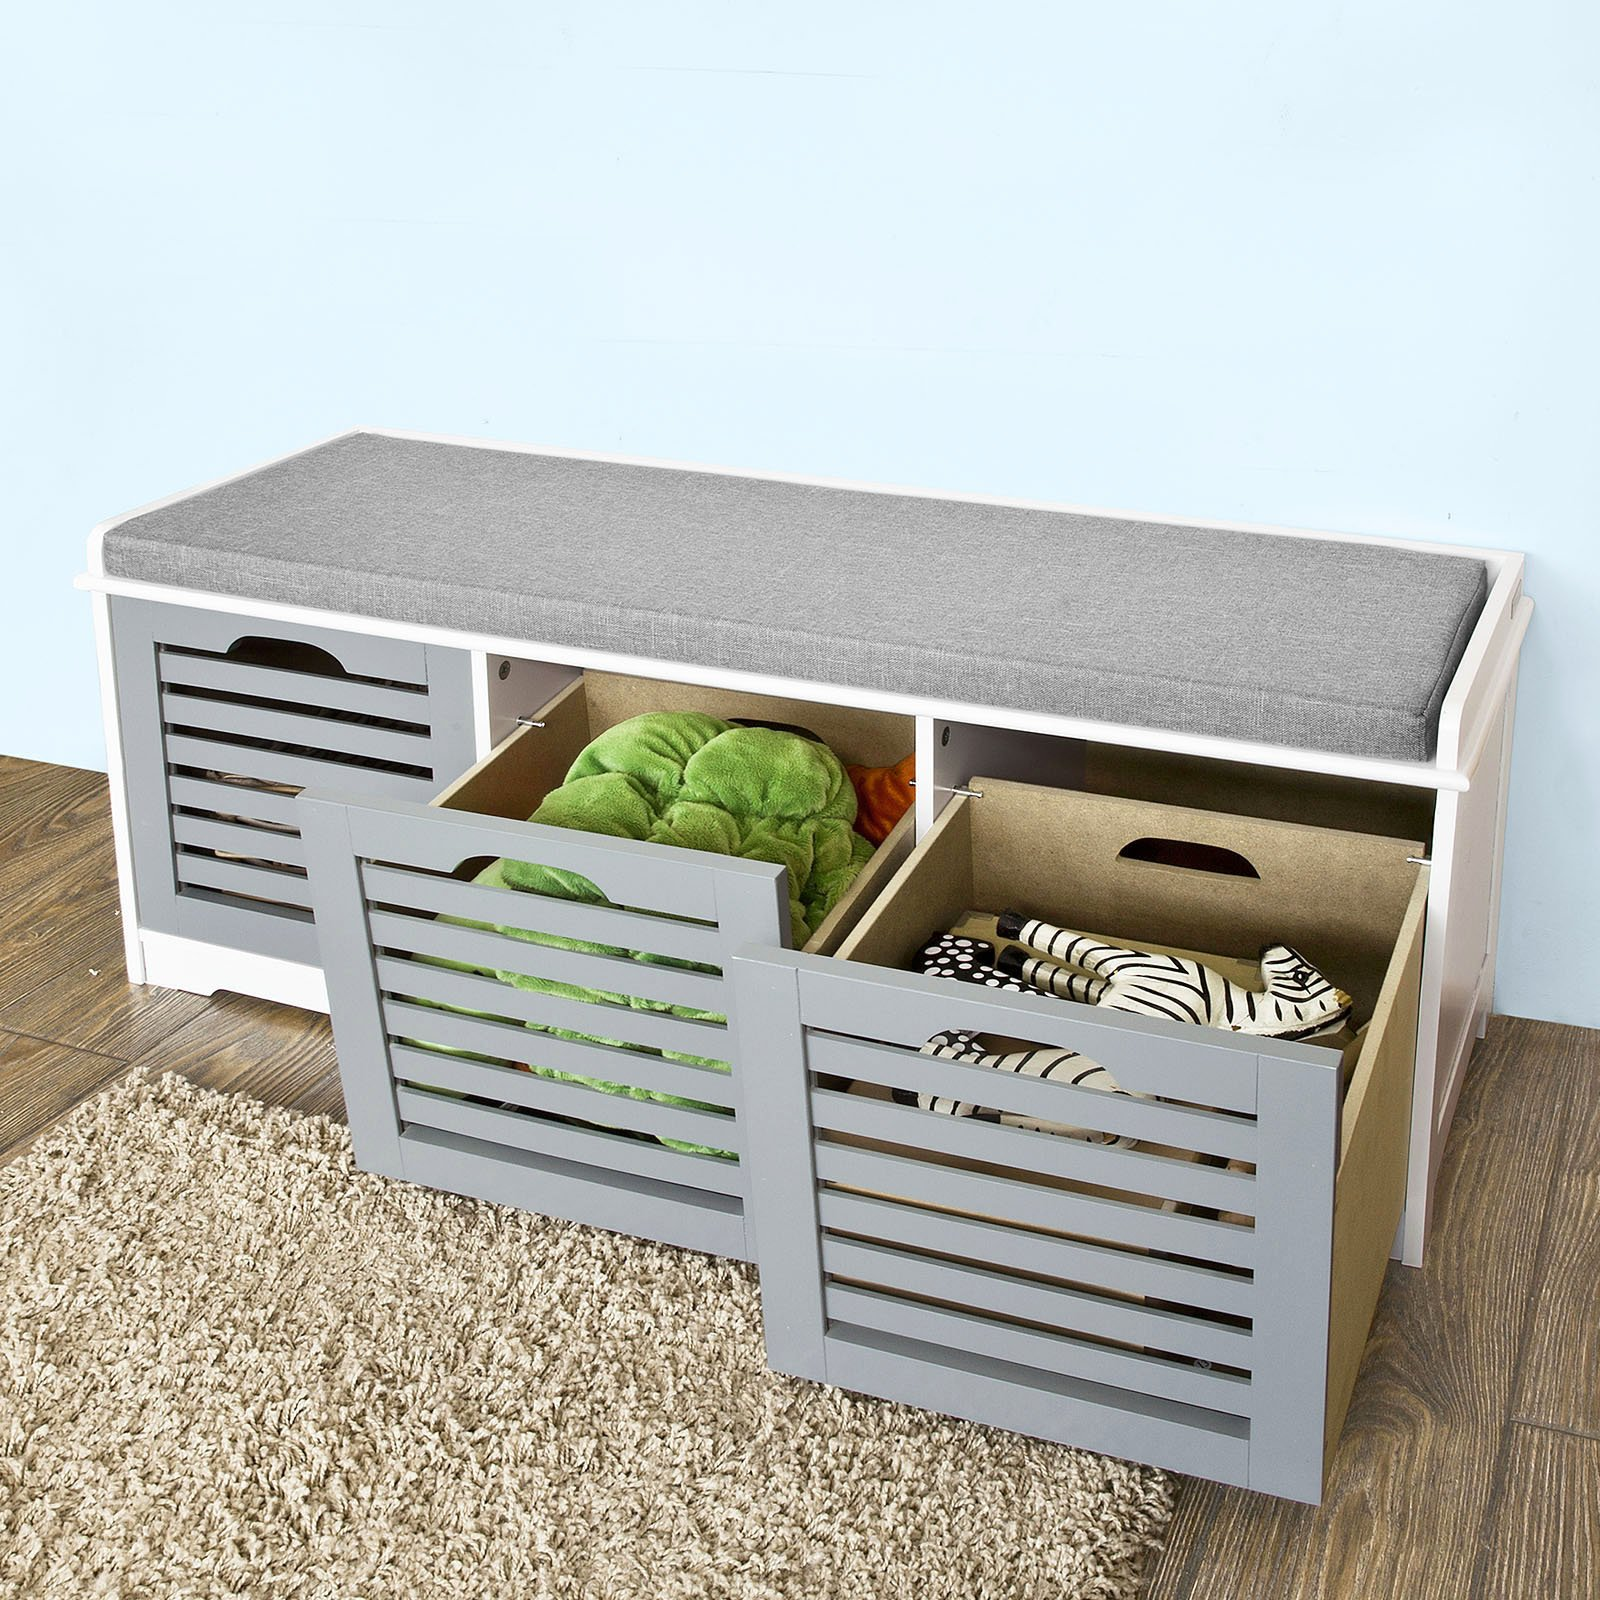 Haotian Fsr23 Hg Storage Bench With 3 Drawers Padded Seat